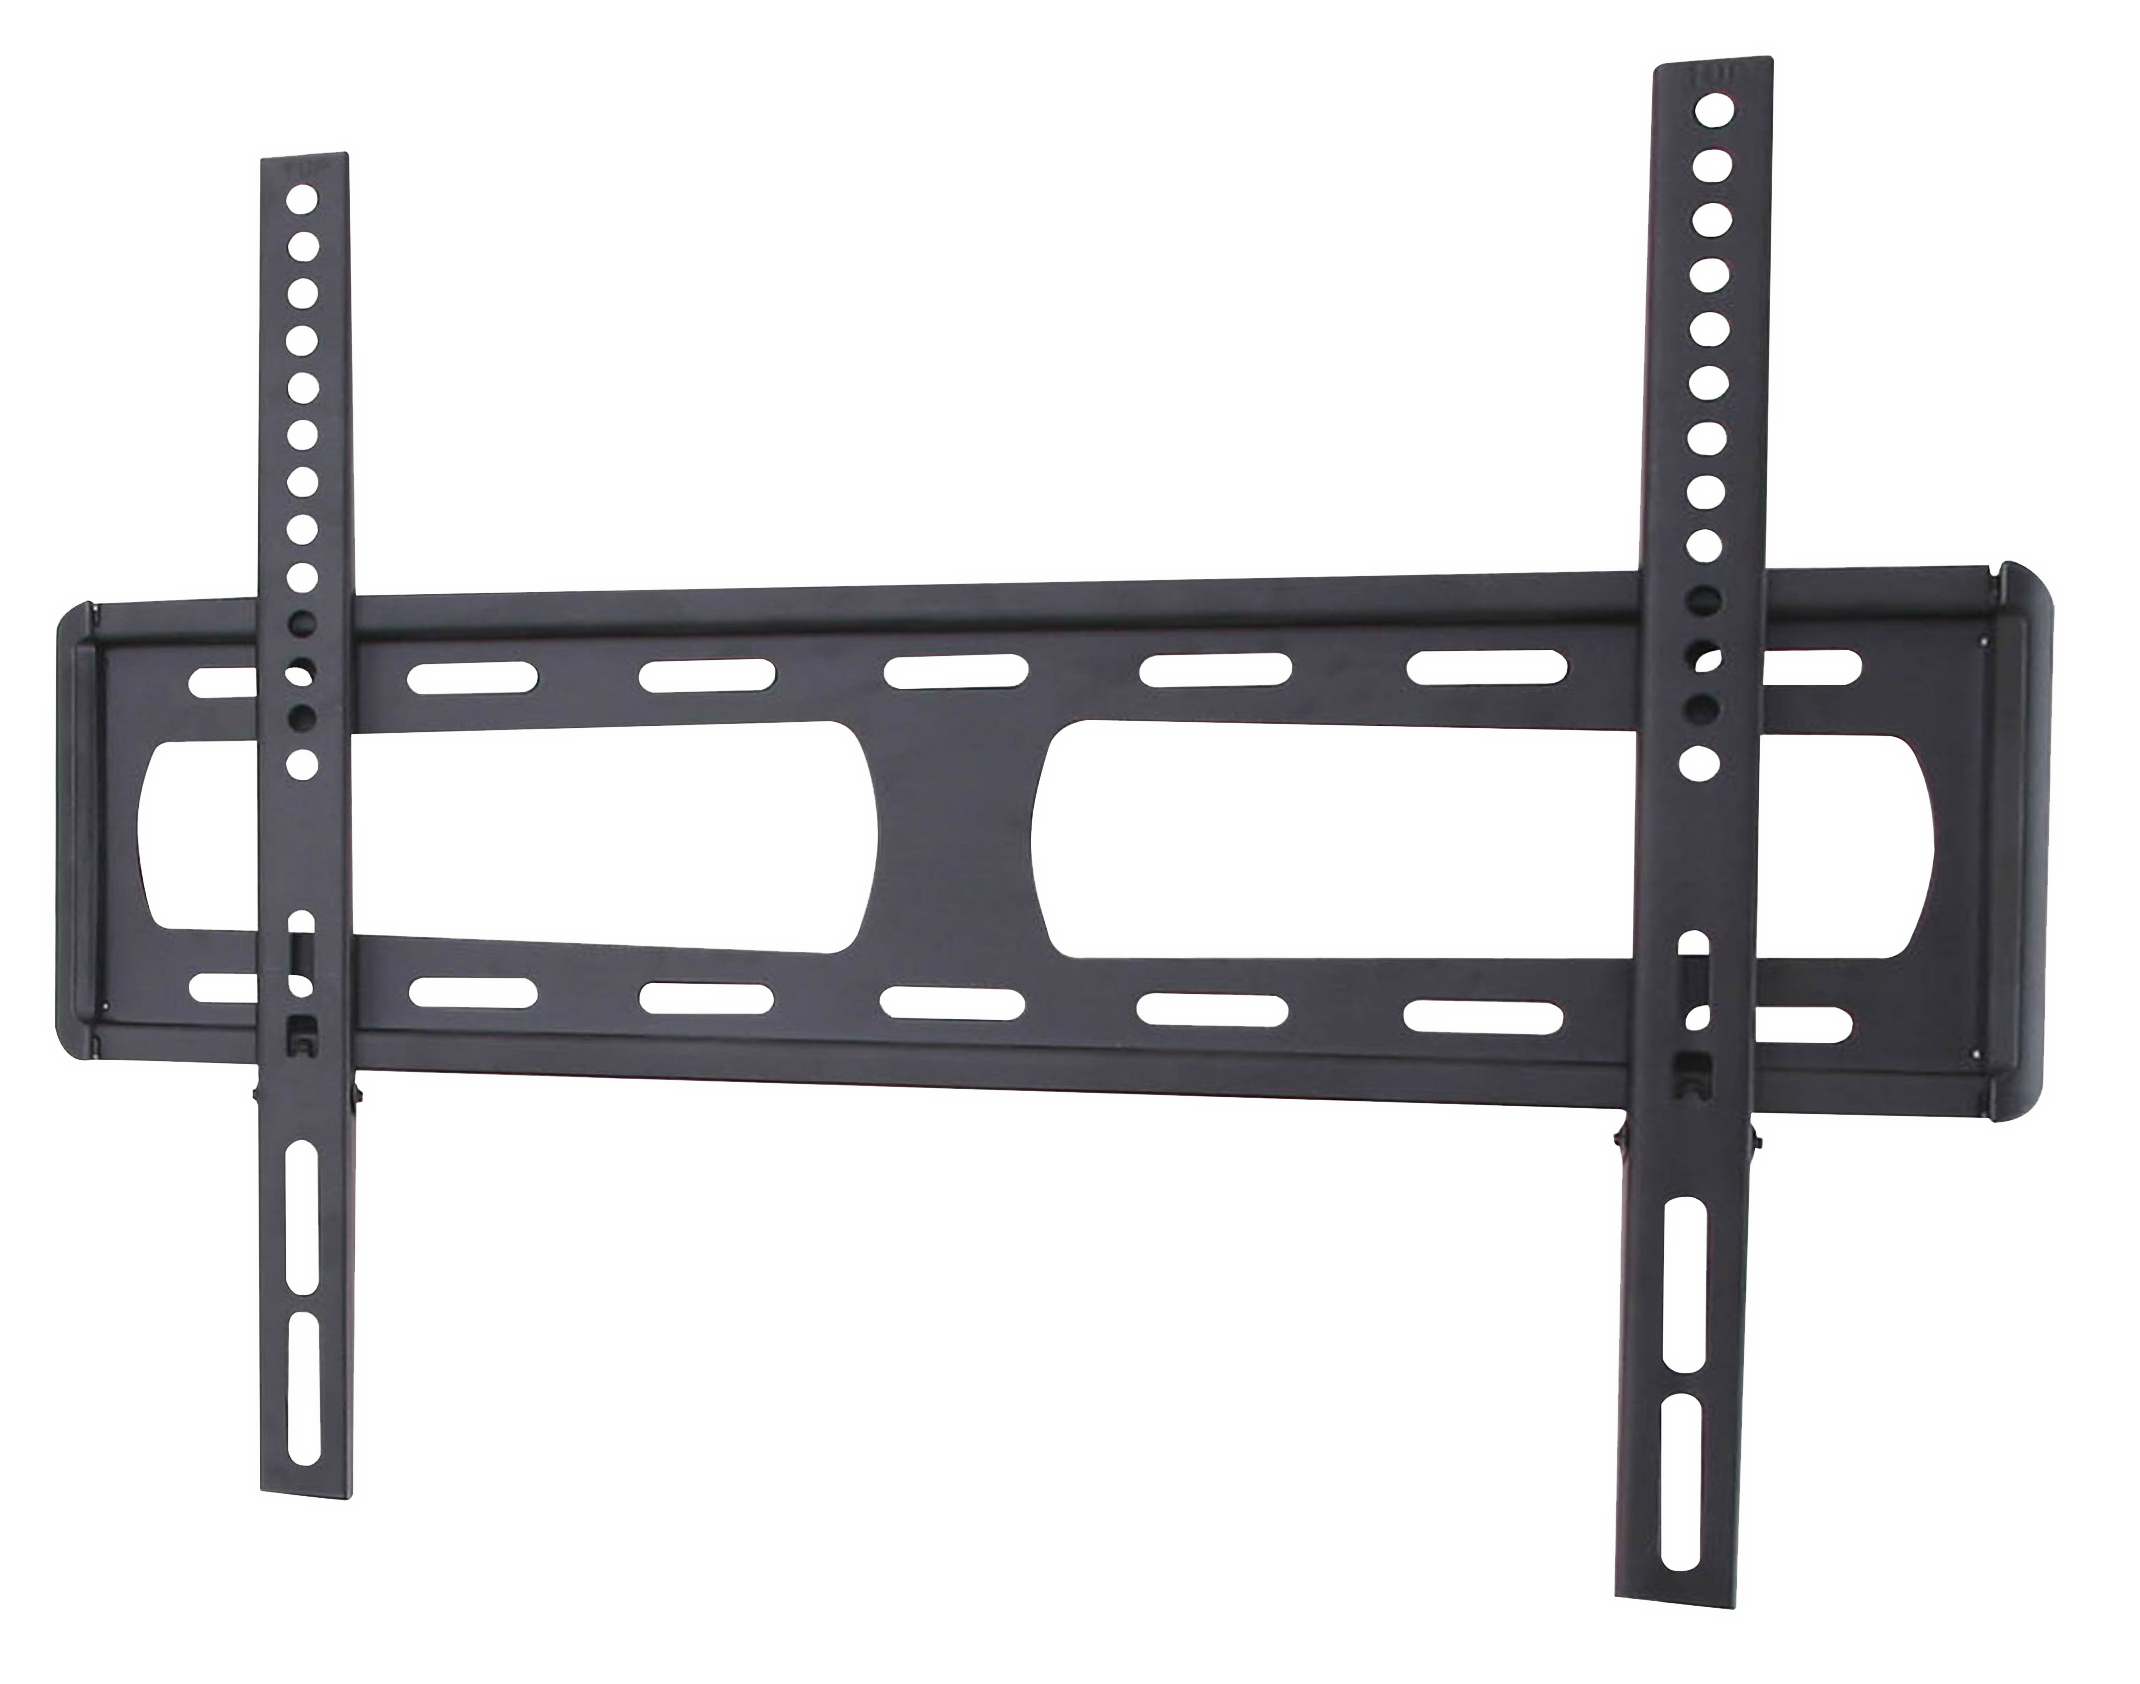 h8164-32-50inch-ultra-slim-fixed-lcd-wall-bracket.png